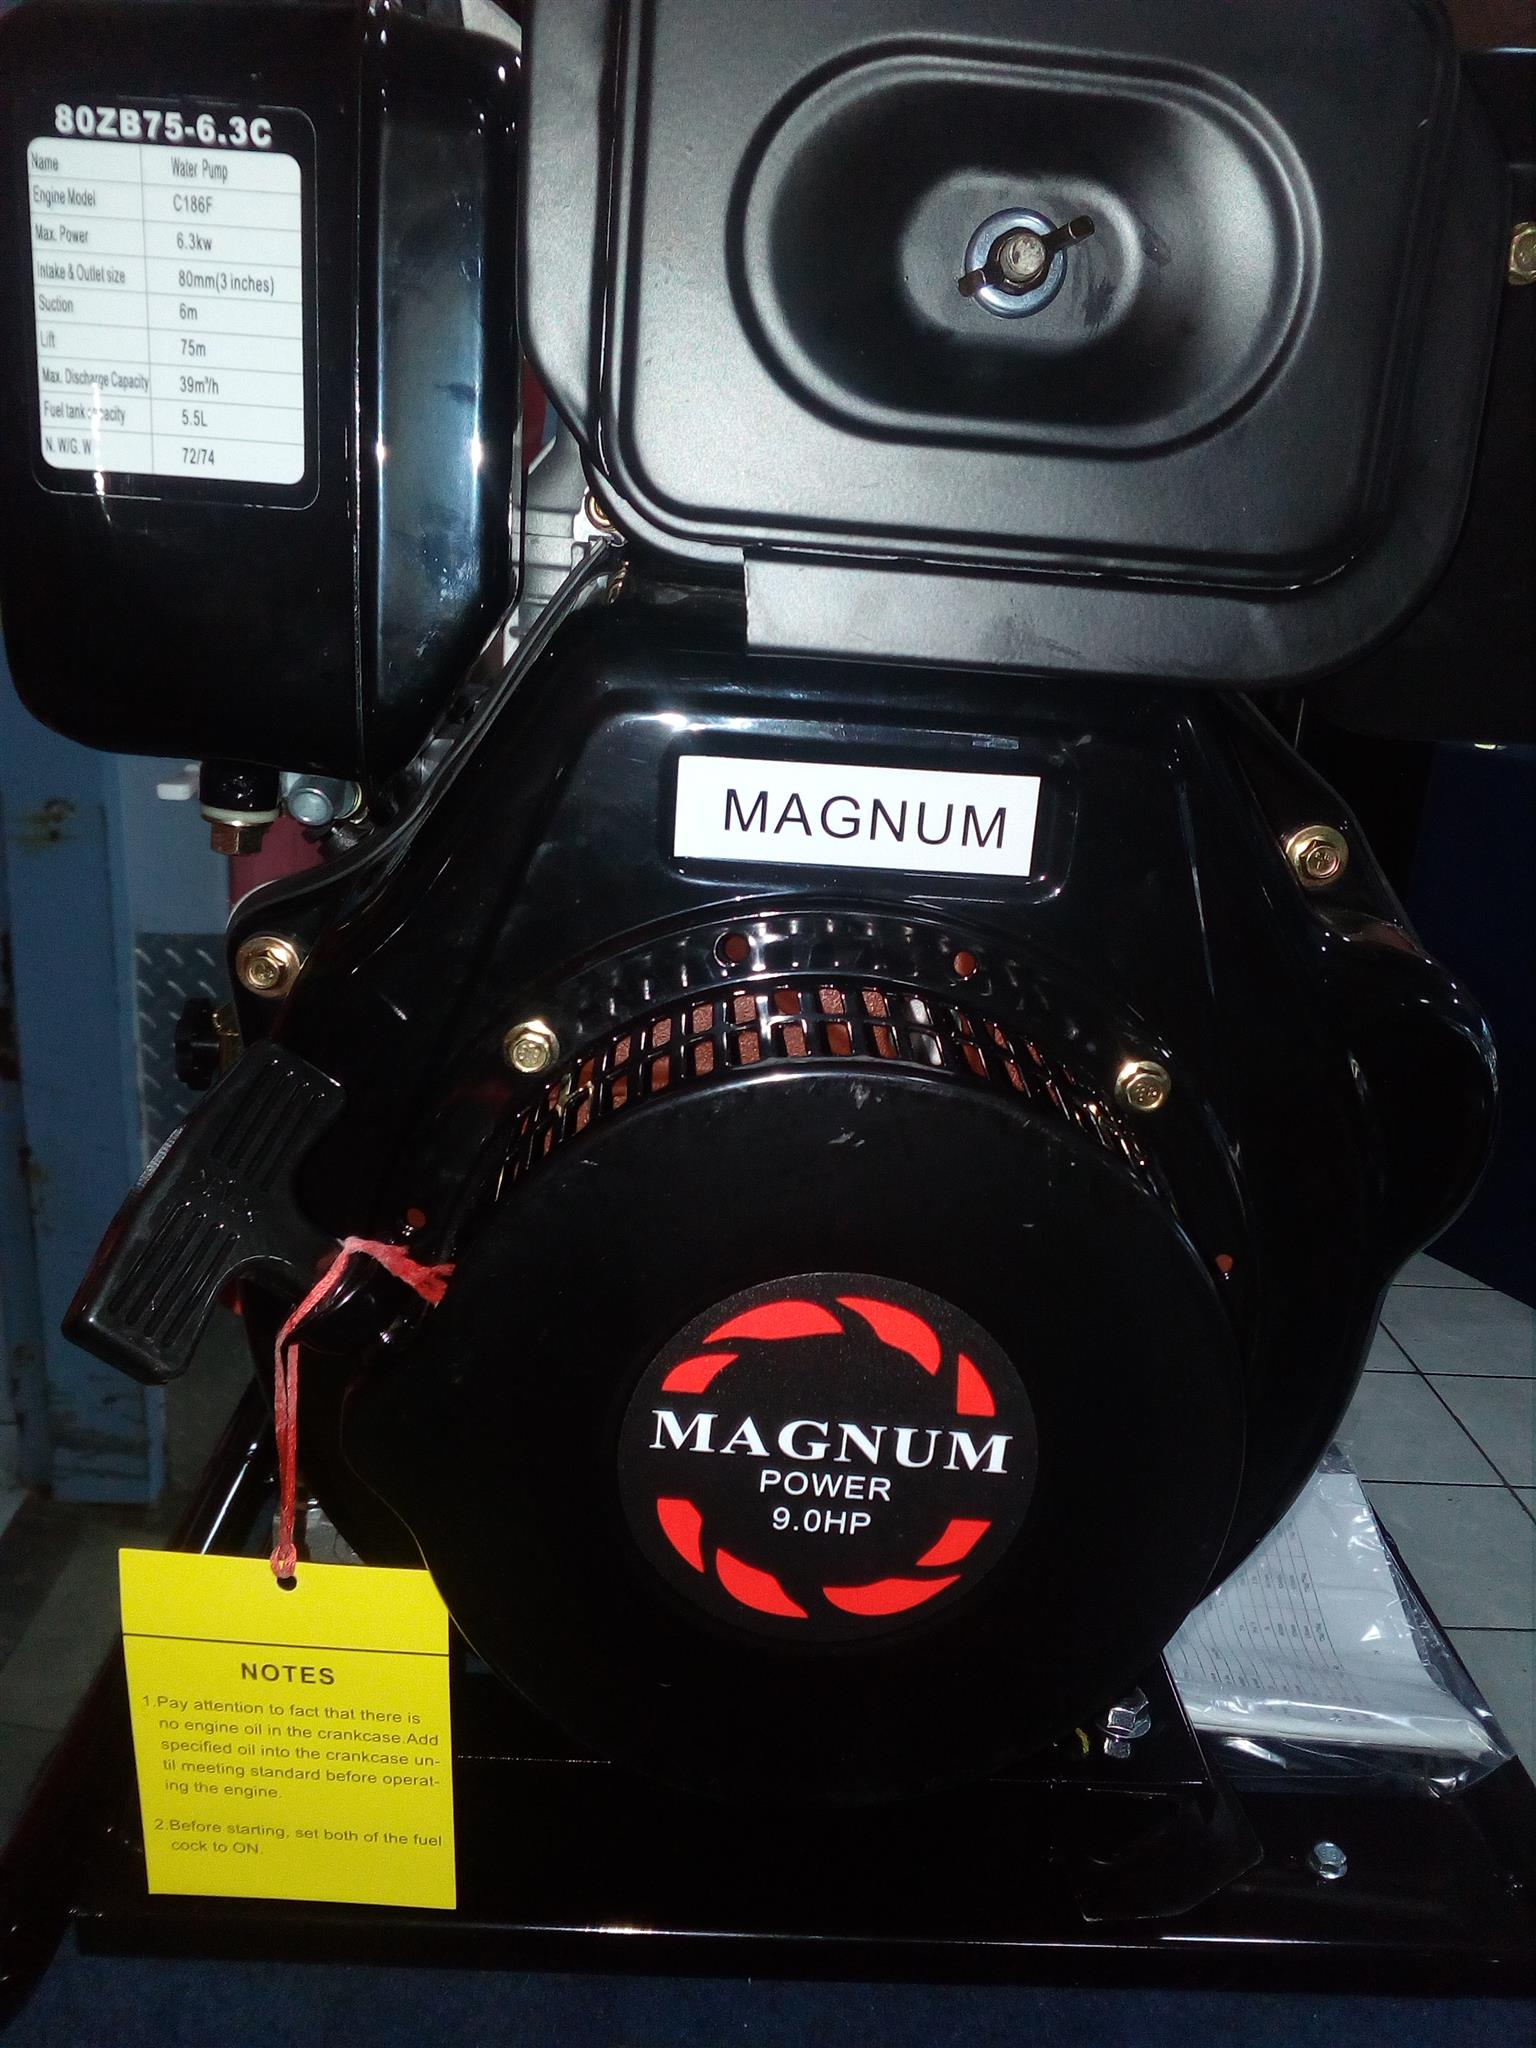 Magnum 186F/9HP Diesel Engine with Recoil Start, price incl vat